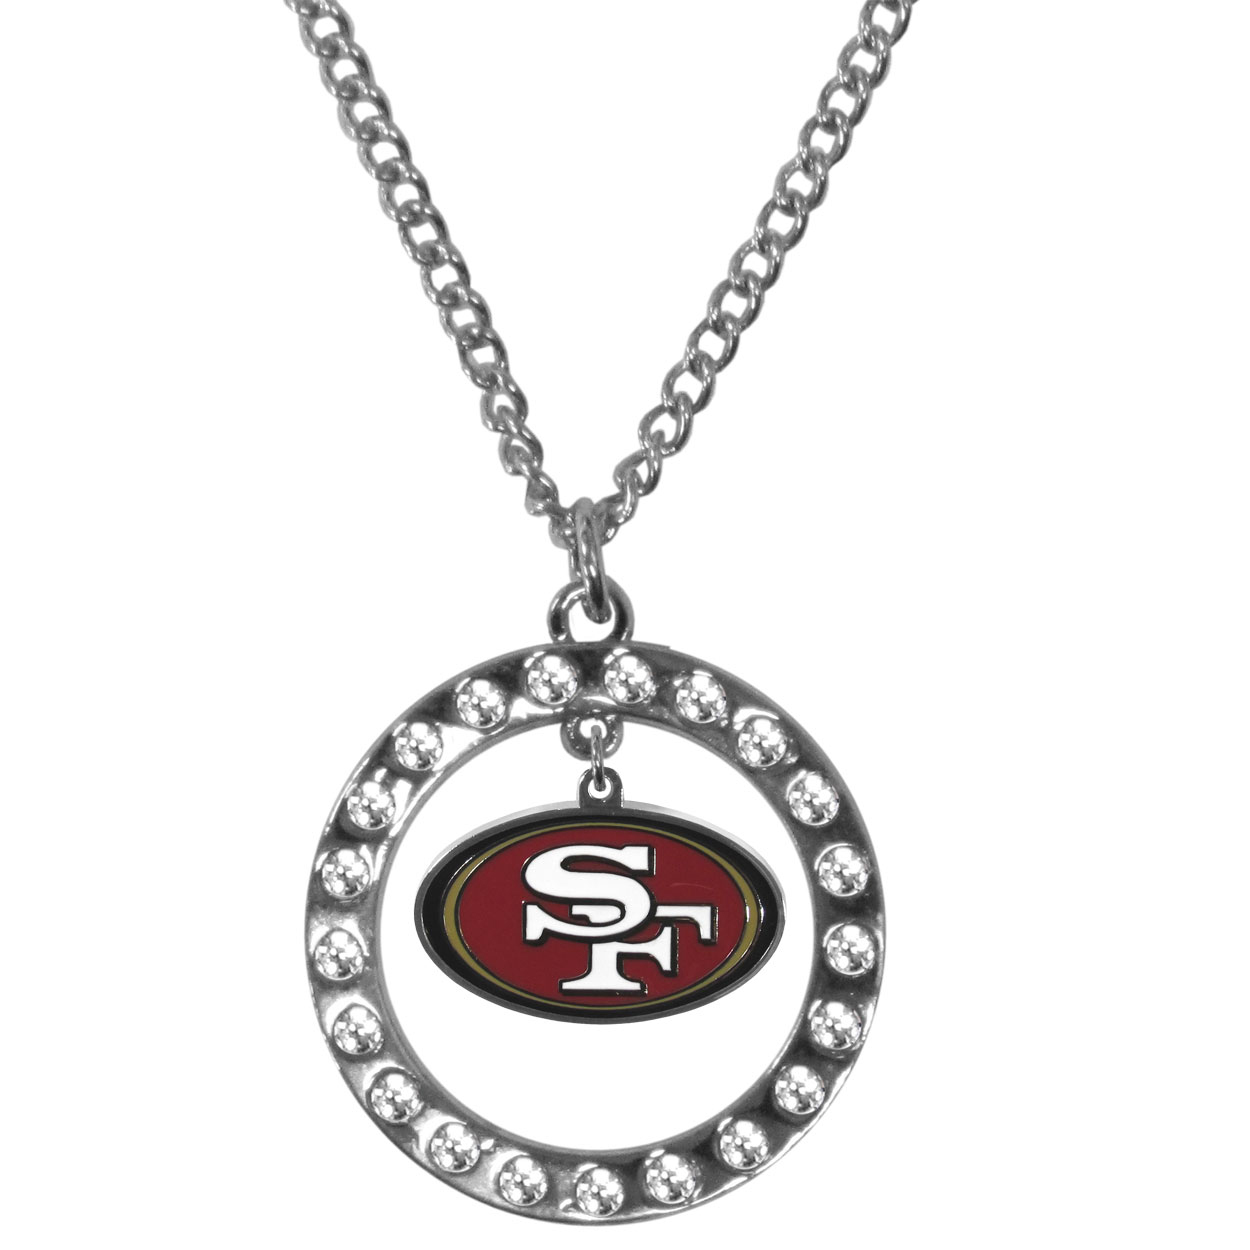 San Francisco 49ers Rhinestone Hoop Necklaces - Our San Francisco 49ers rhinestone hoop necklace comes on an 18 inch chain and features a hoop covered in rhinestones with a high polish chrome finish and a cast and enameled team charm dangling in the center.